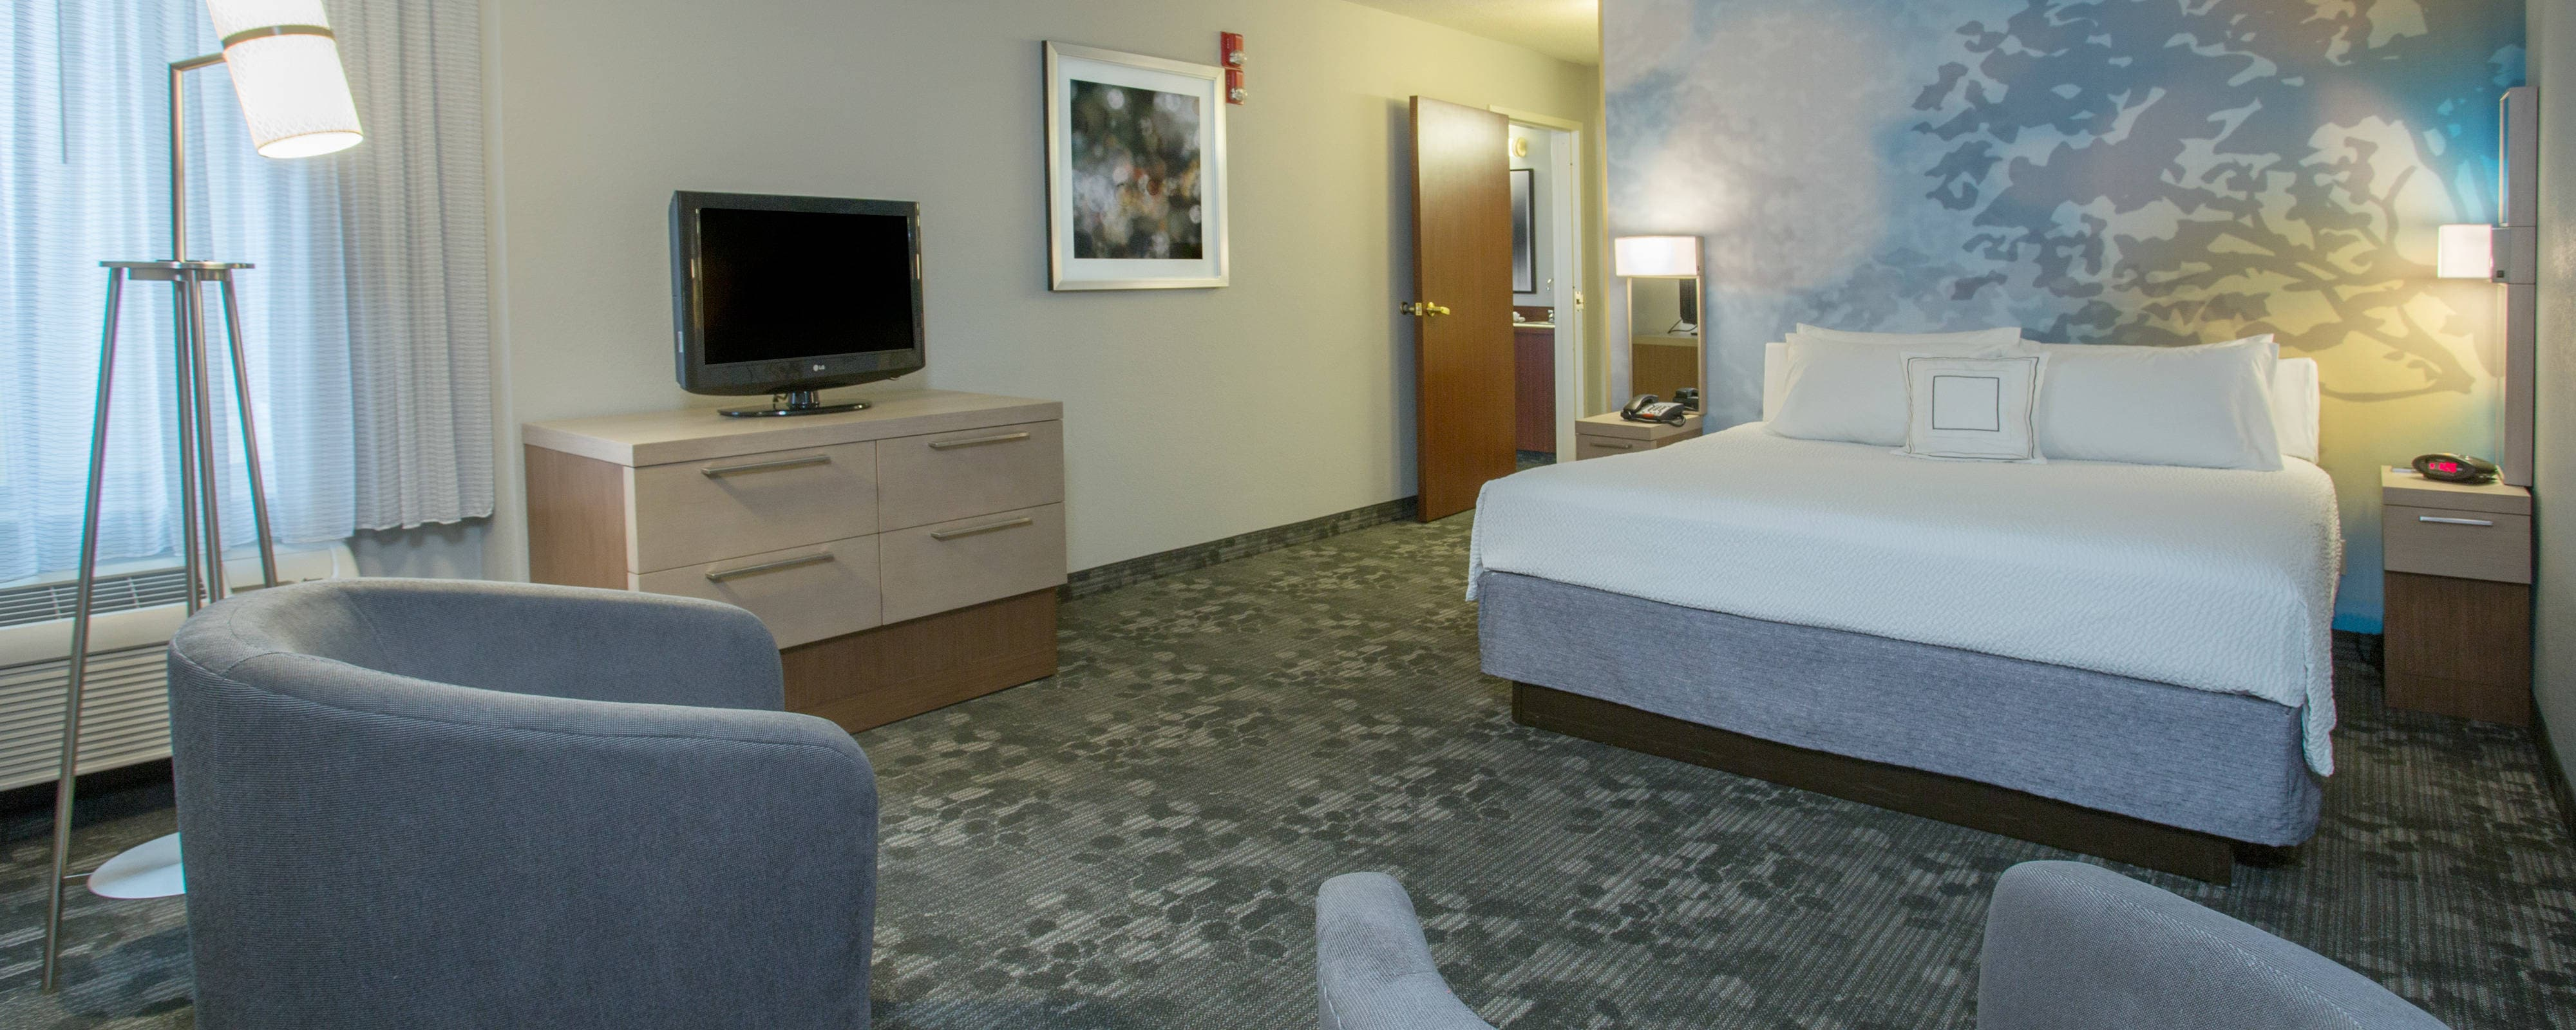 Boston Raynham Hotel King Suite